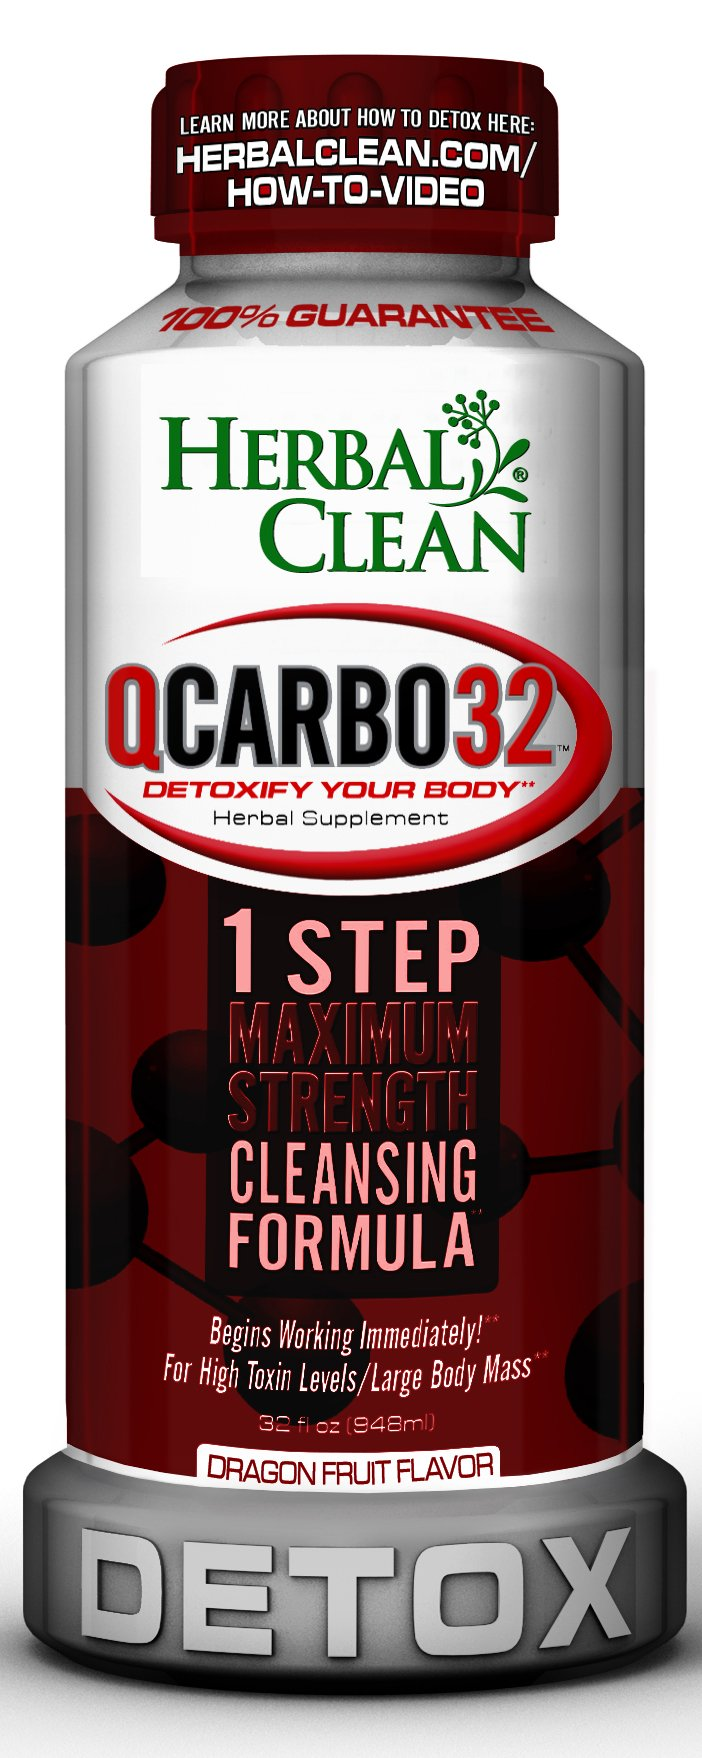 Qcarbo32 by Herbal Clean, Same Day Detox, Herbal Supplement, Detoxify Your Body The Very Same Day - New Flavor Dragon Fruit by Herbal Clean